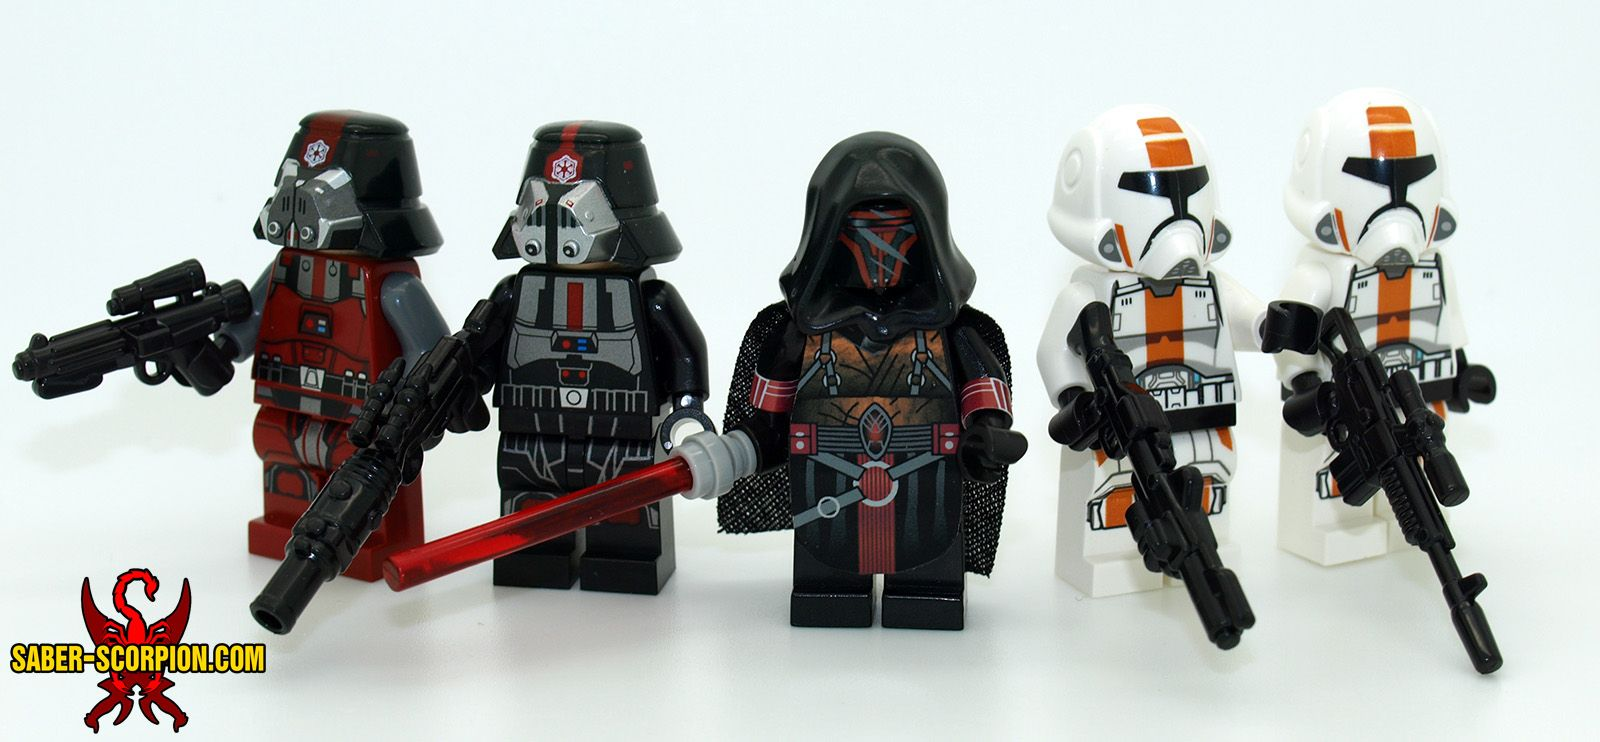 Lots of new sw lego custom minifigs stickers and brickarms blasters now available at